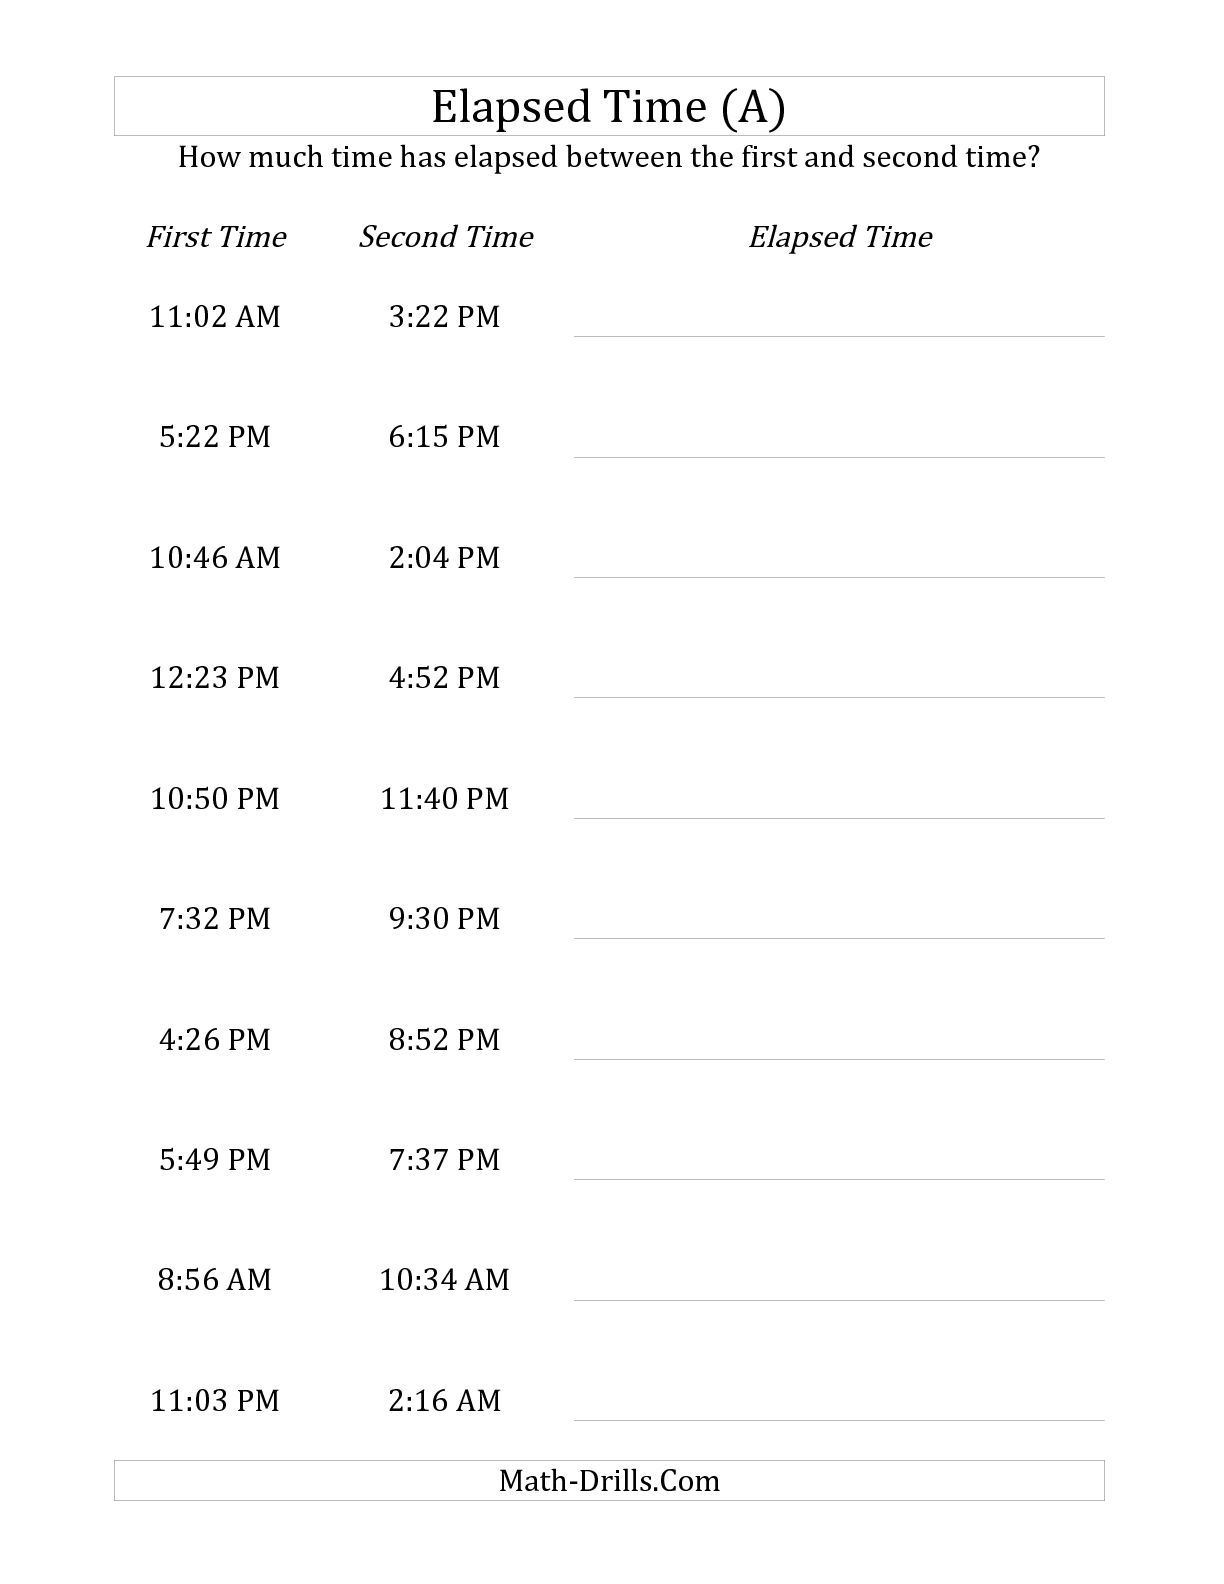 The Elapsed Time Up To 5 Hours In 1 Minute Intervals A Math Worksheet From The Time Worksheet